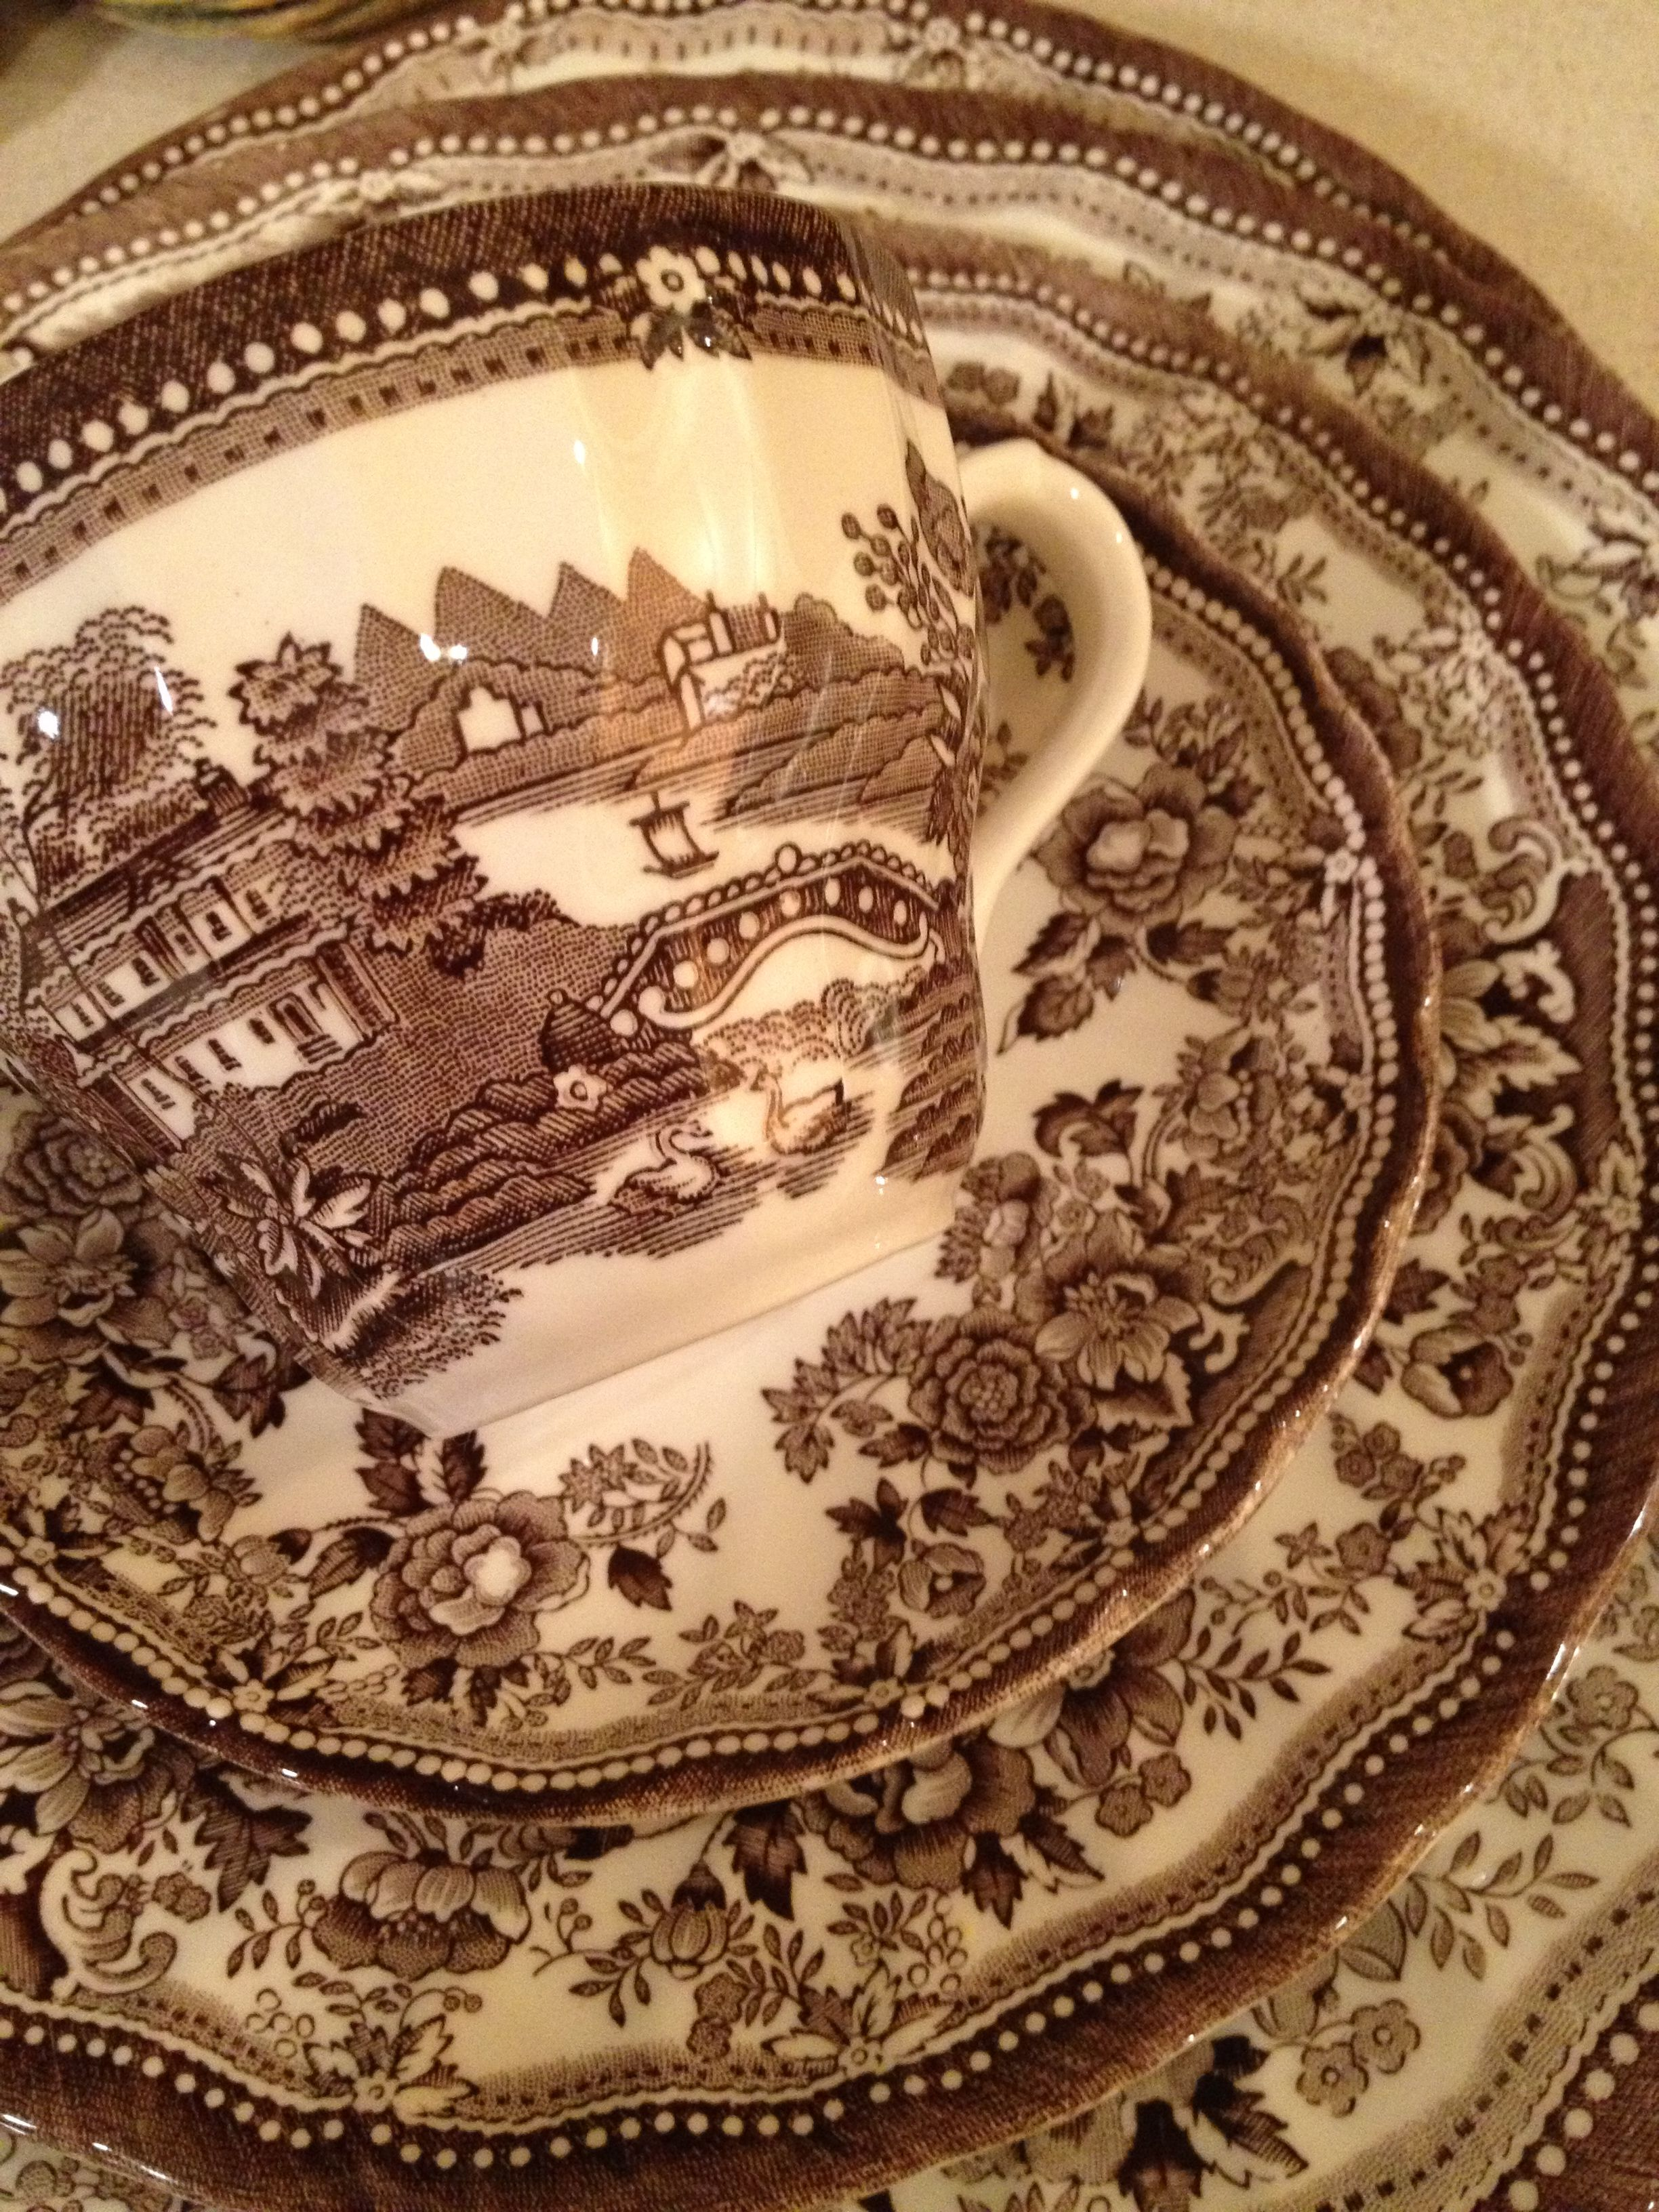 living room country decor colors for rooms 2017 transferware on pinterest   brown, plates and english